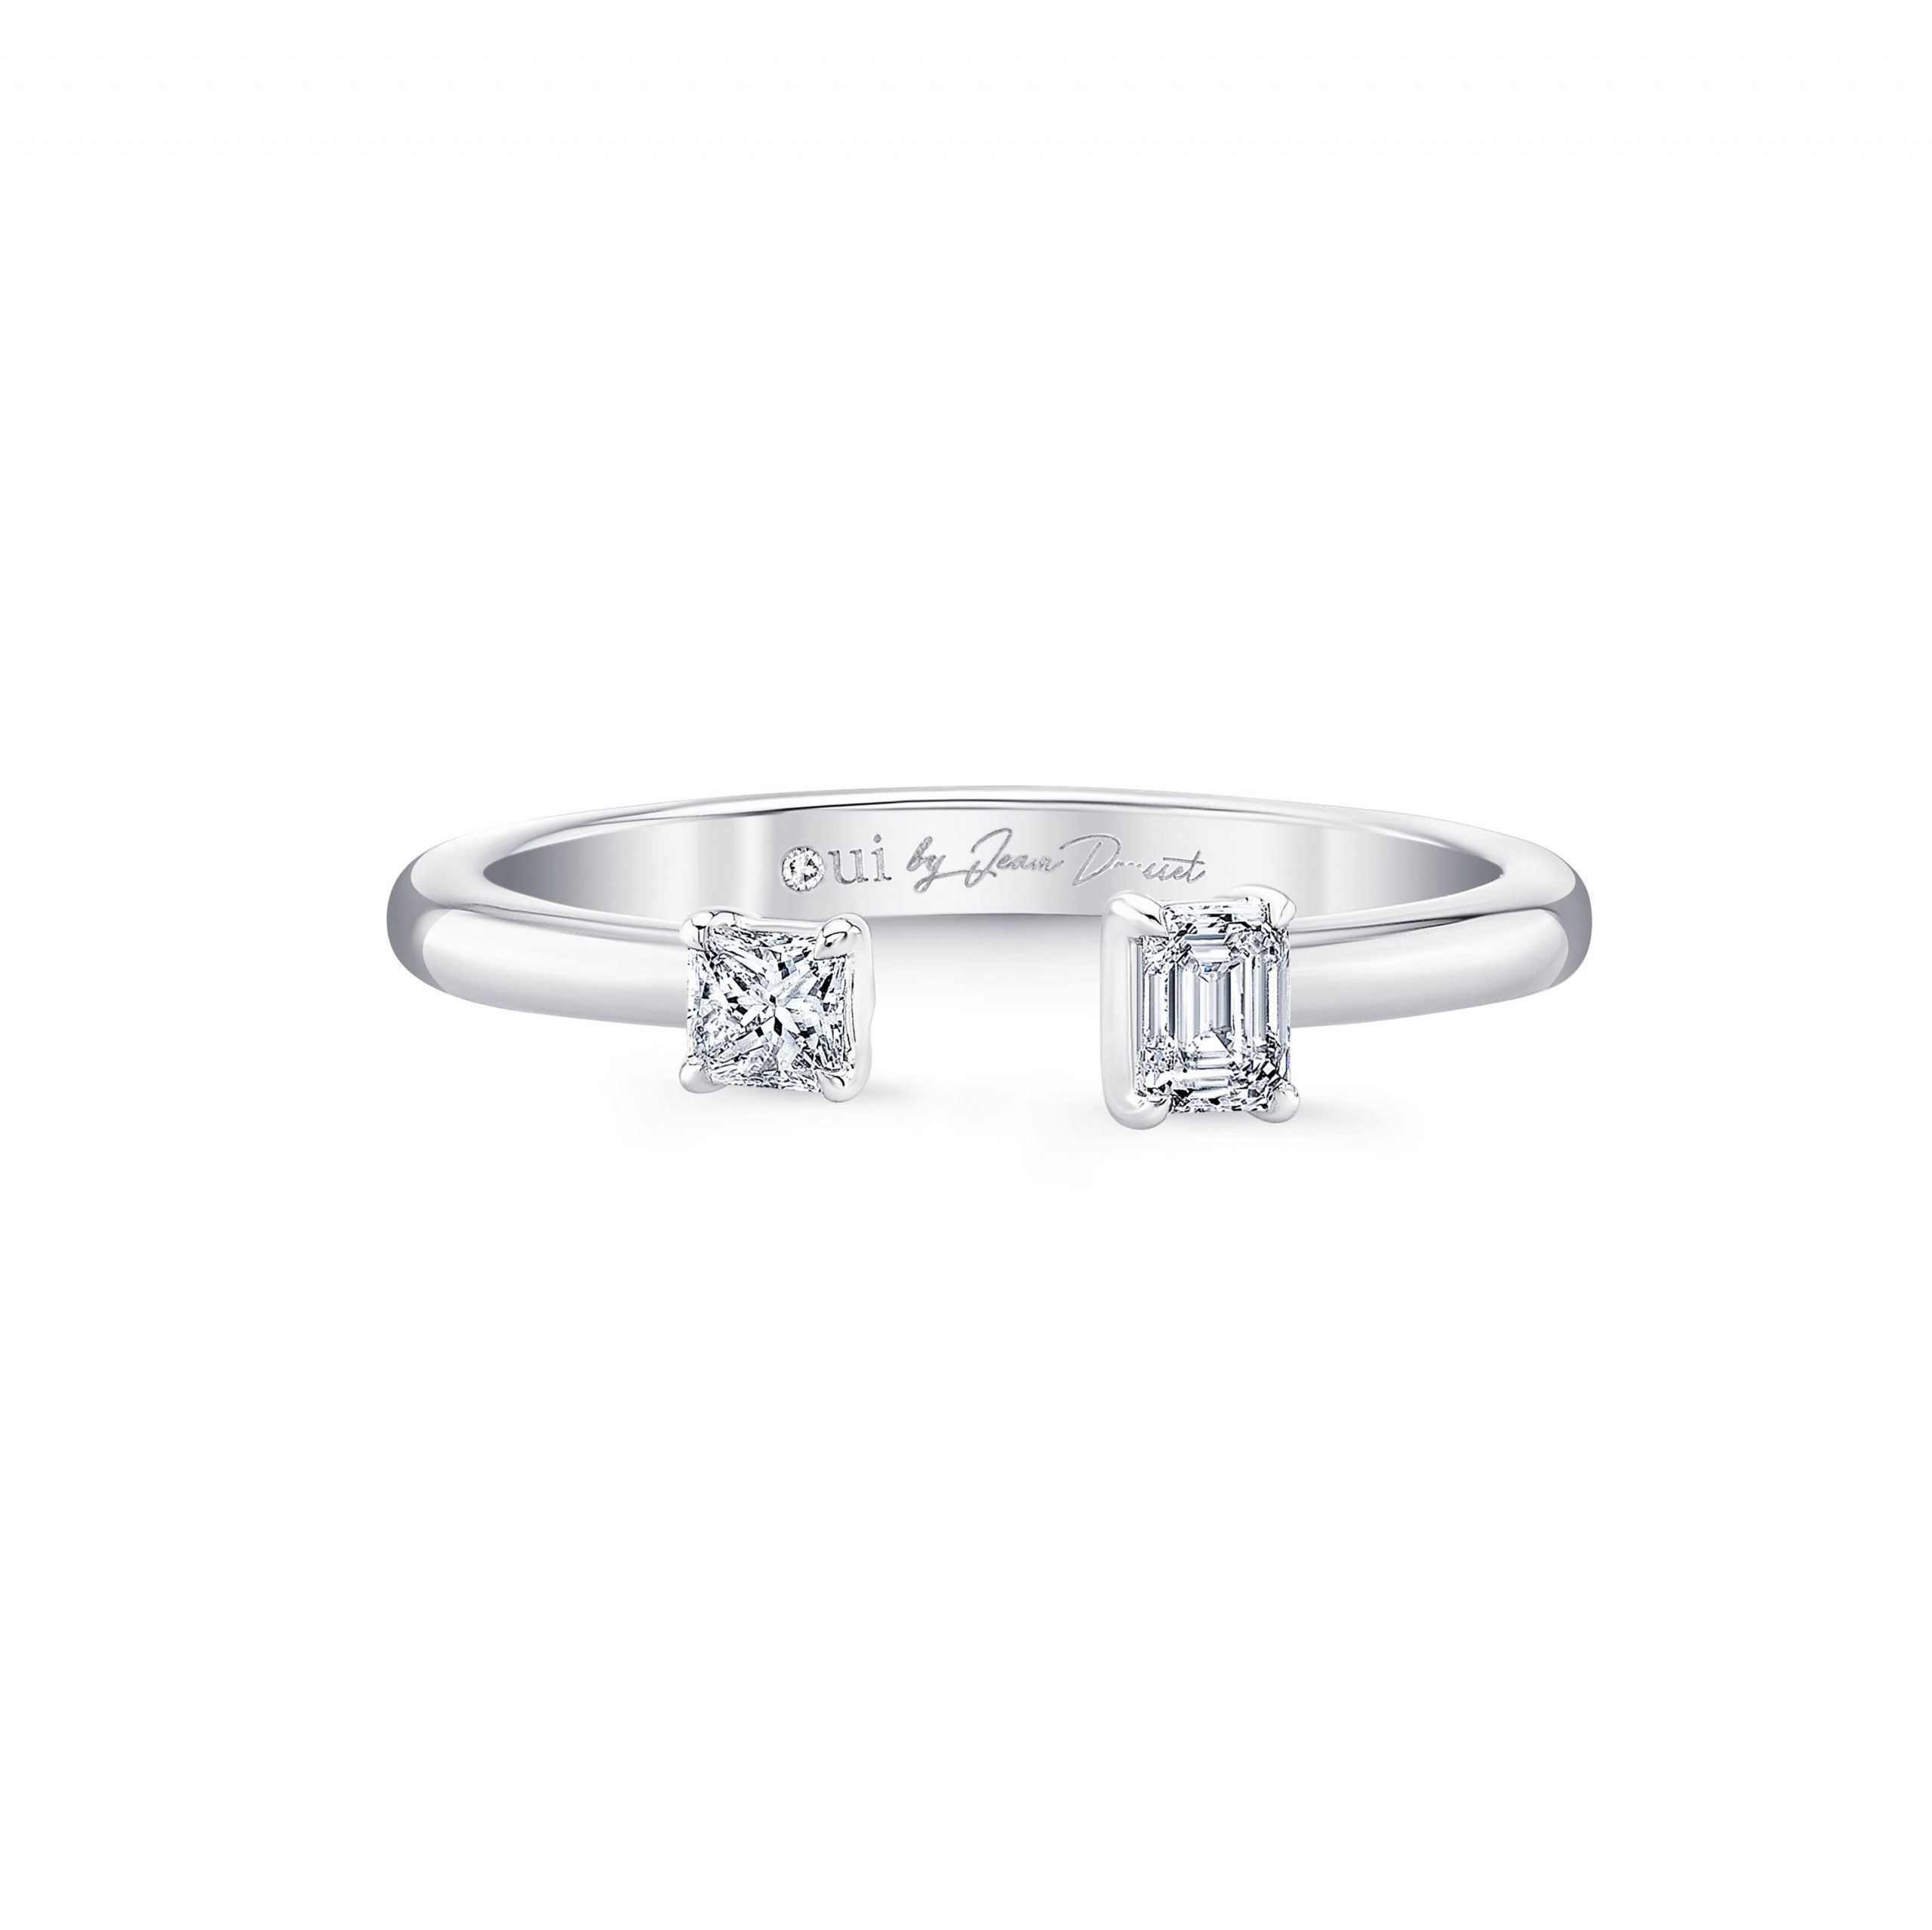 Celeste Mixed Diamond Open Ring, princess & emerald in 18k White Gold Front View by Oui by Jean Dousset